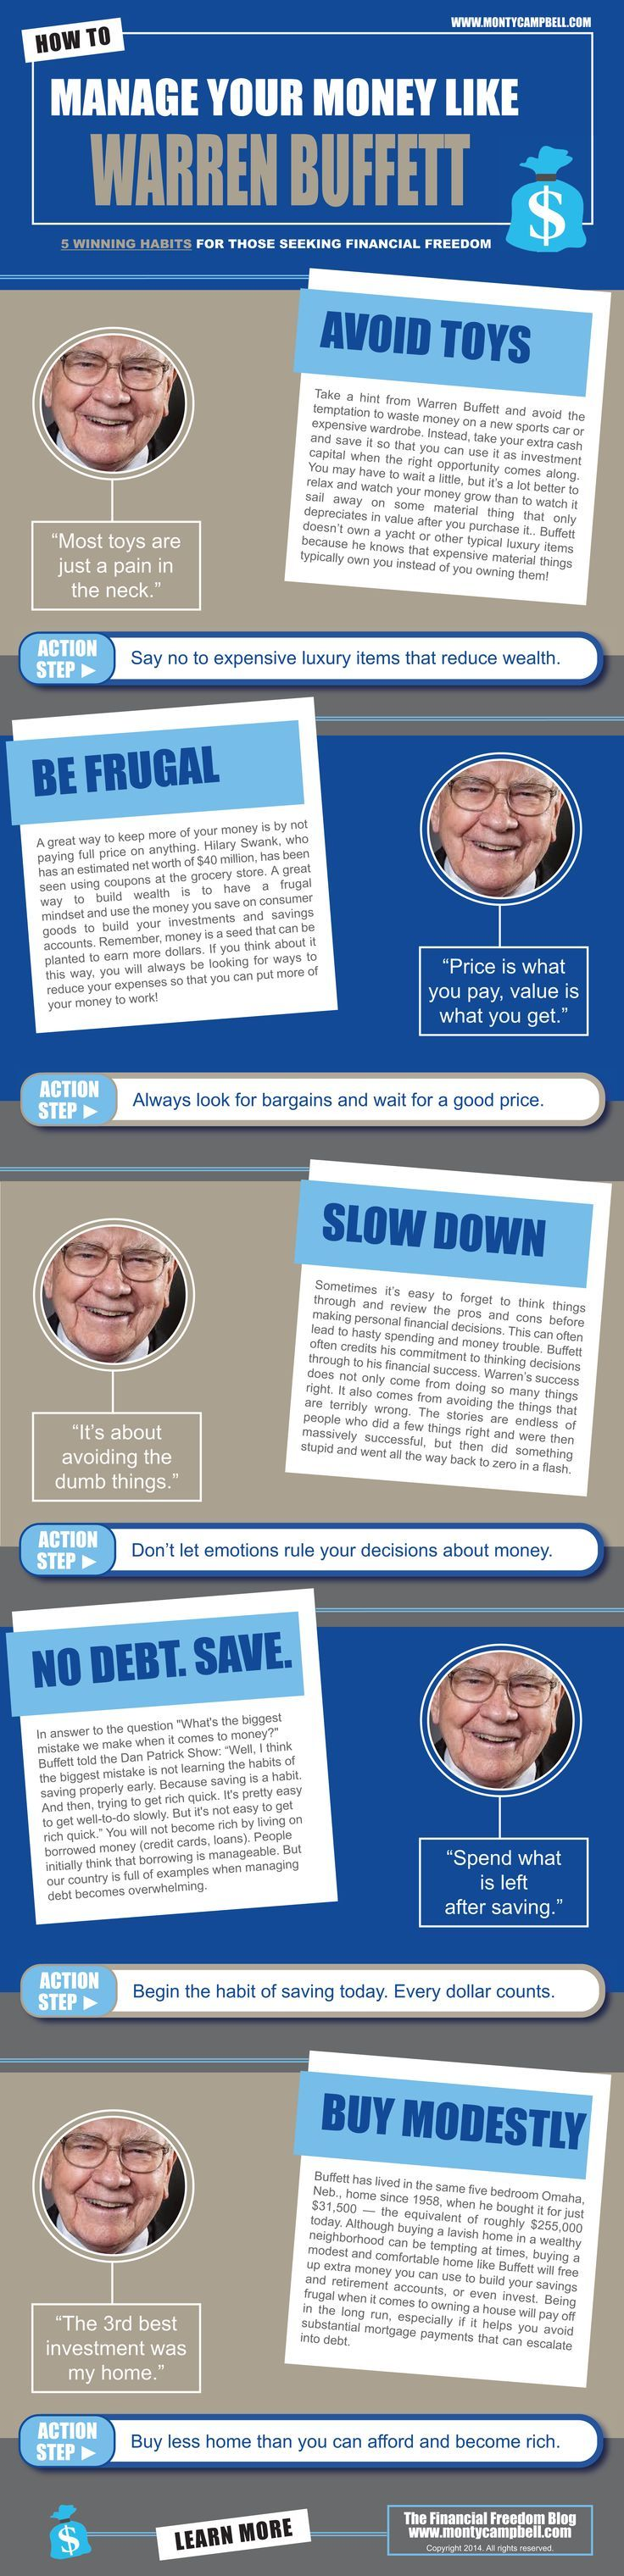 Warren Buffet infographic. God - please grant me the willpower for resisting consumerism investing basics, how to invest #personalfinance